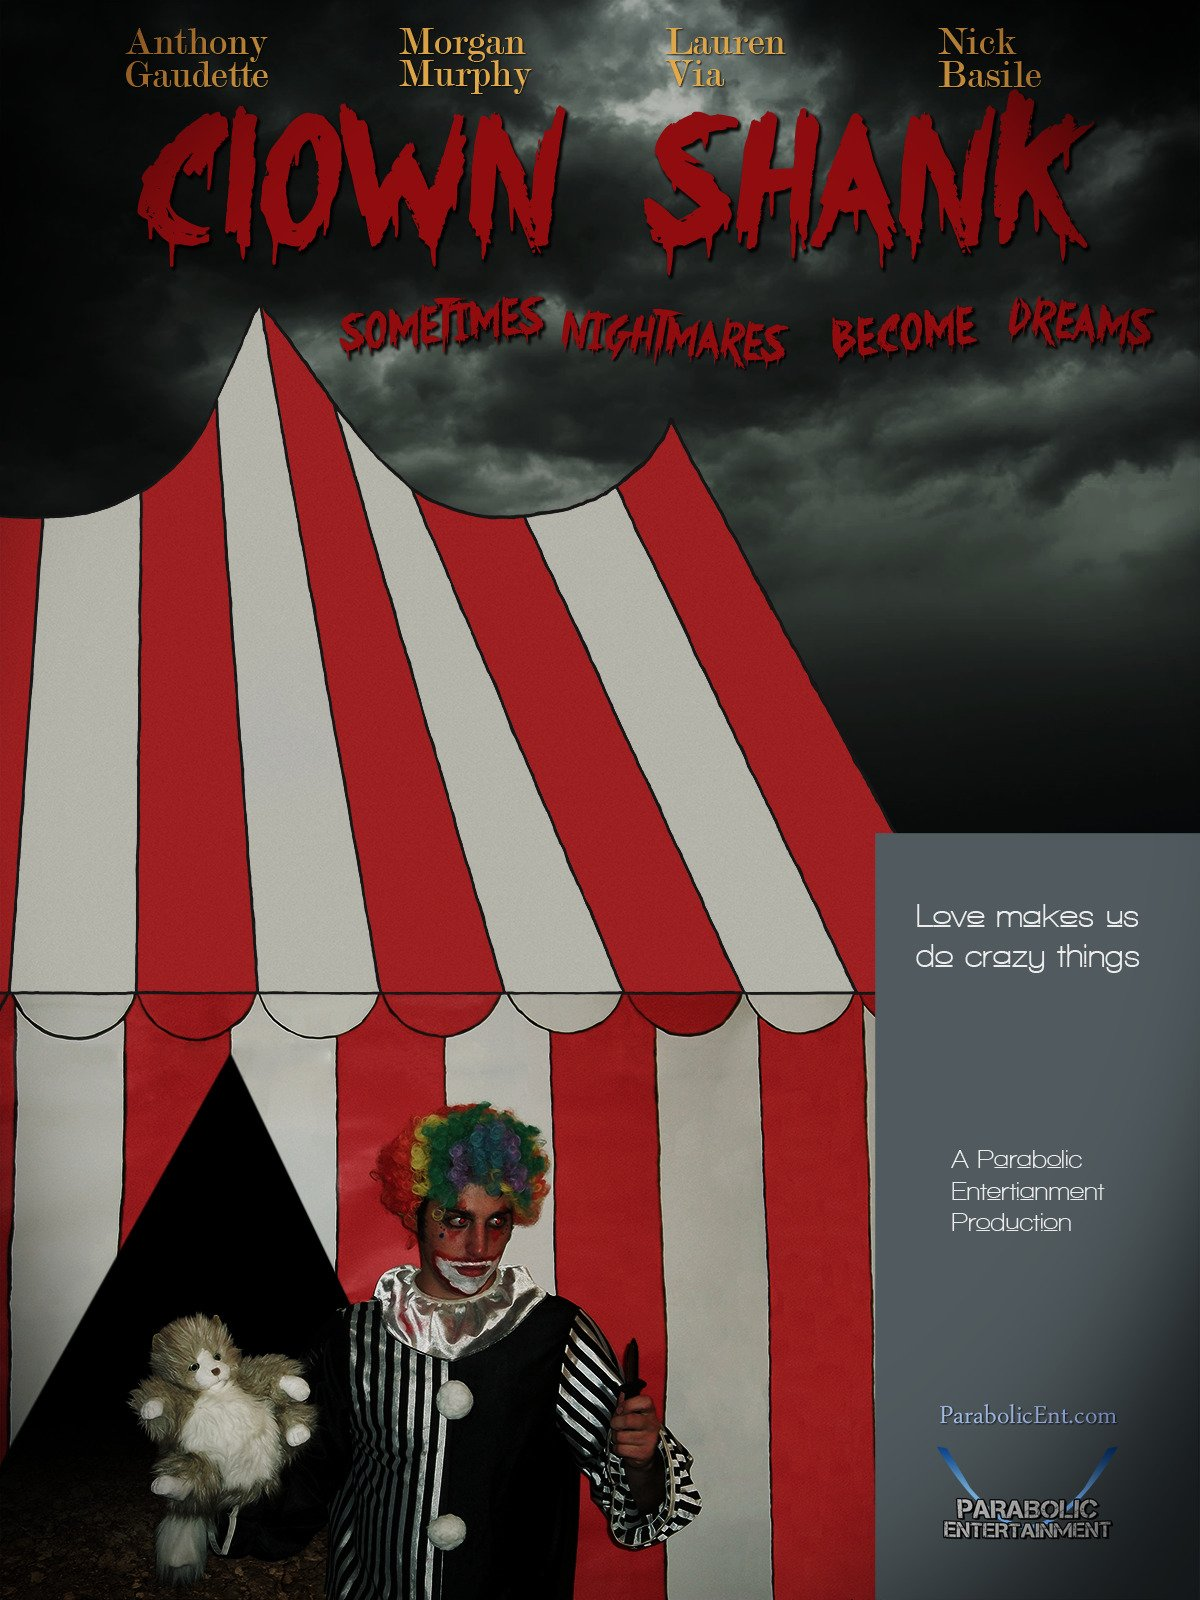 Clown Shank